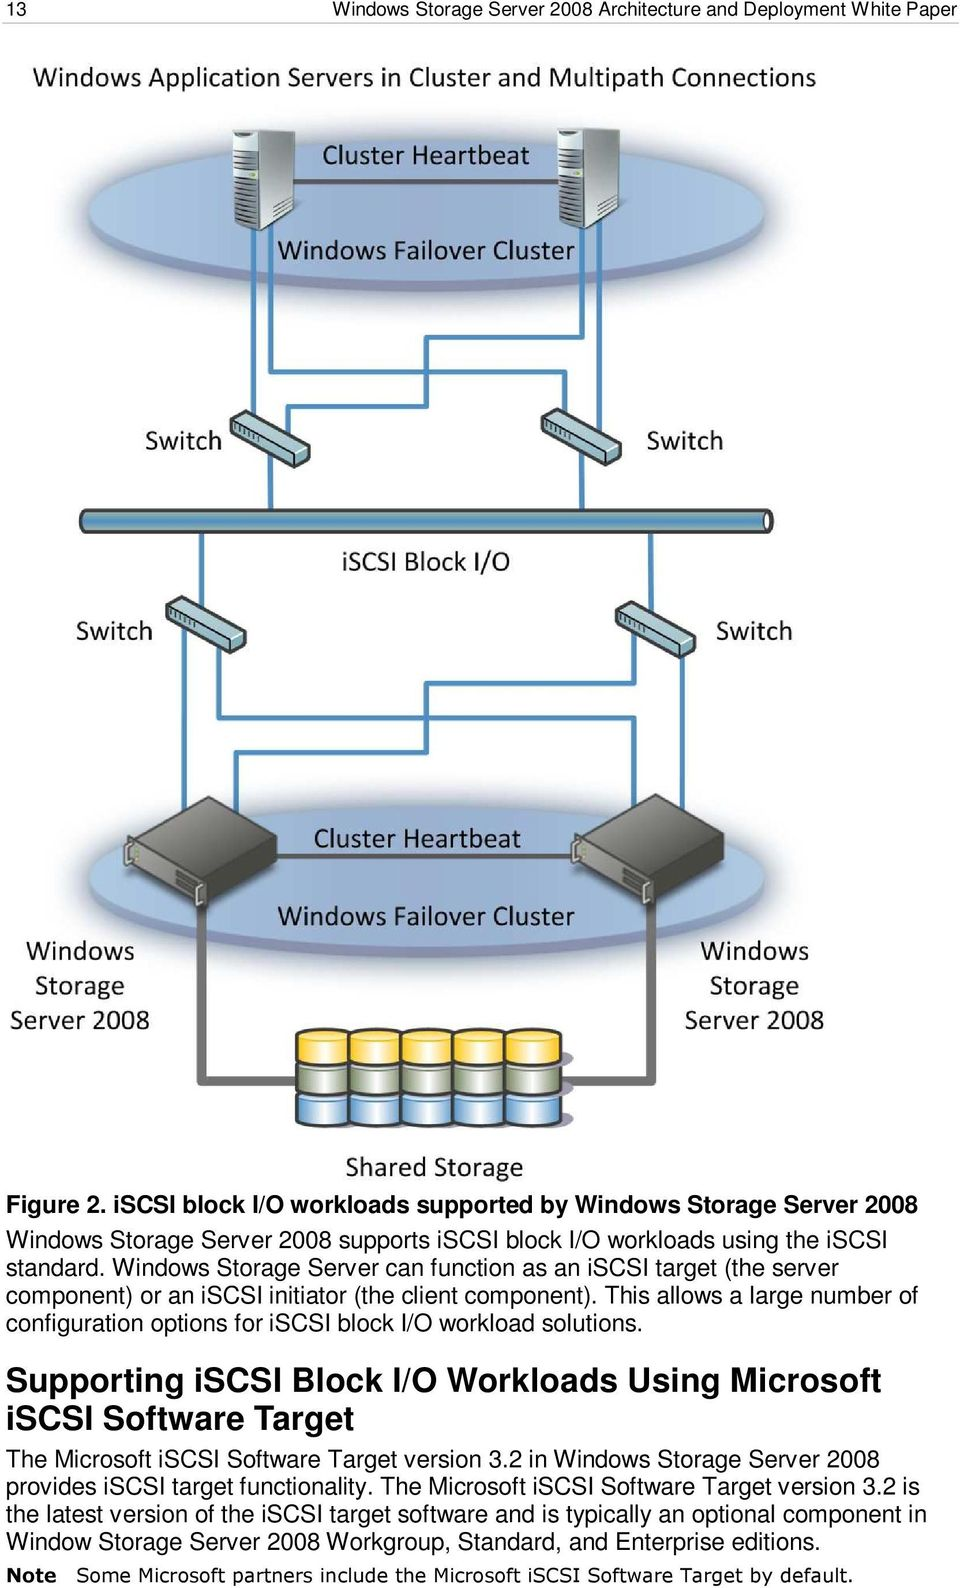 Windows Storage Server can function as an iscsi target (the server component) or an iscsi initiator (the client component).